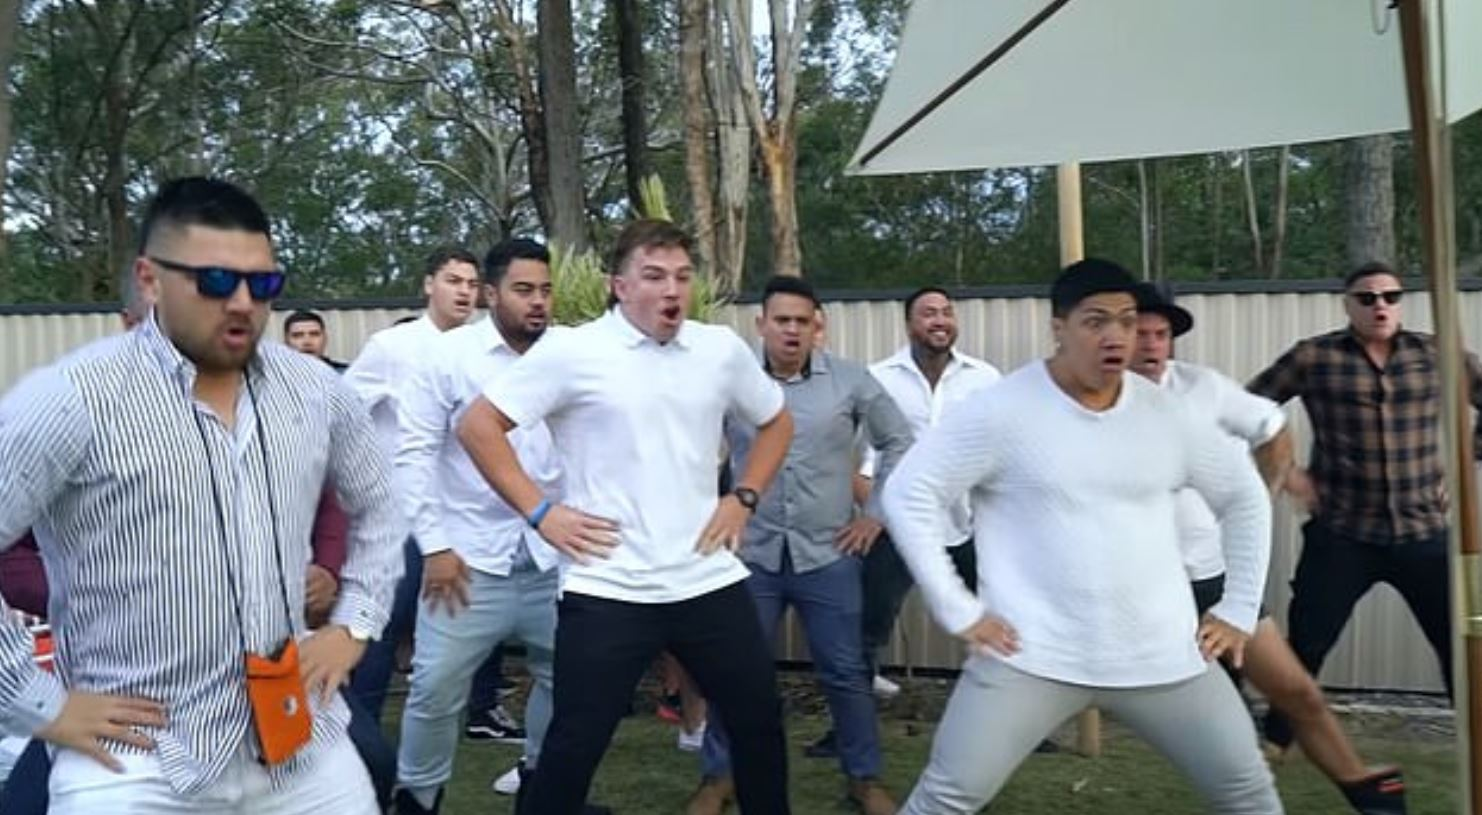 Men perform haka as Woman Marries Love Of Her Life One Day Before He Dies